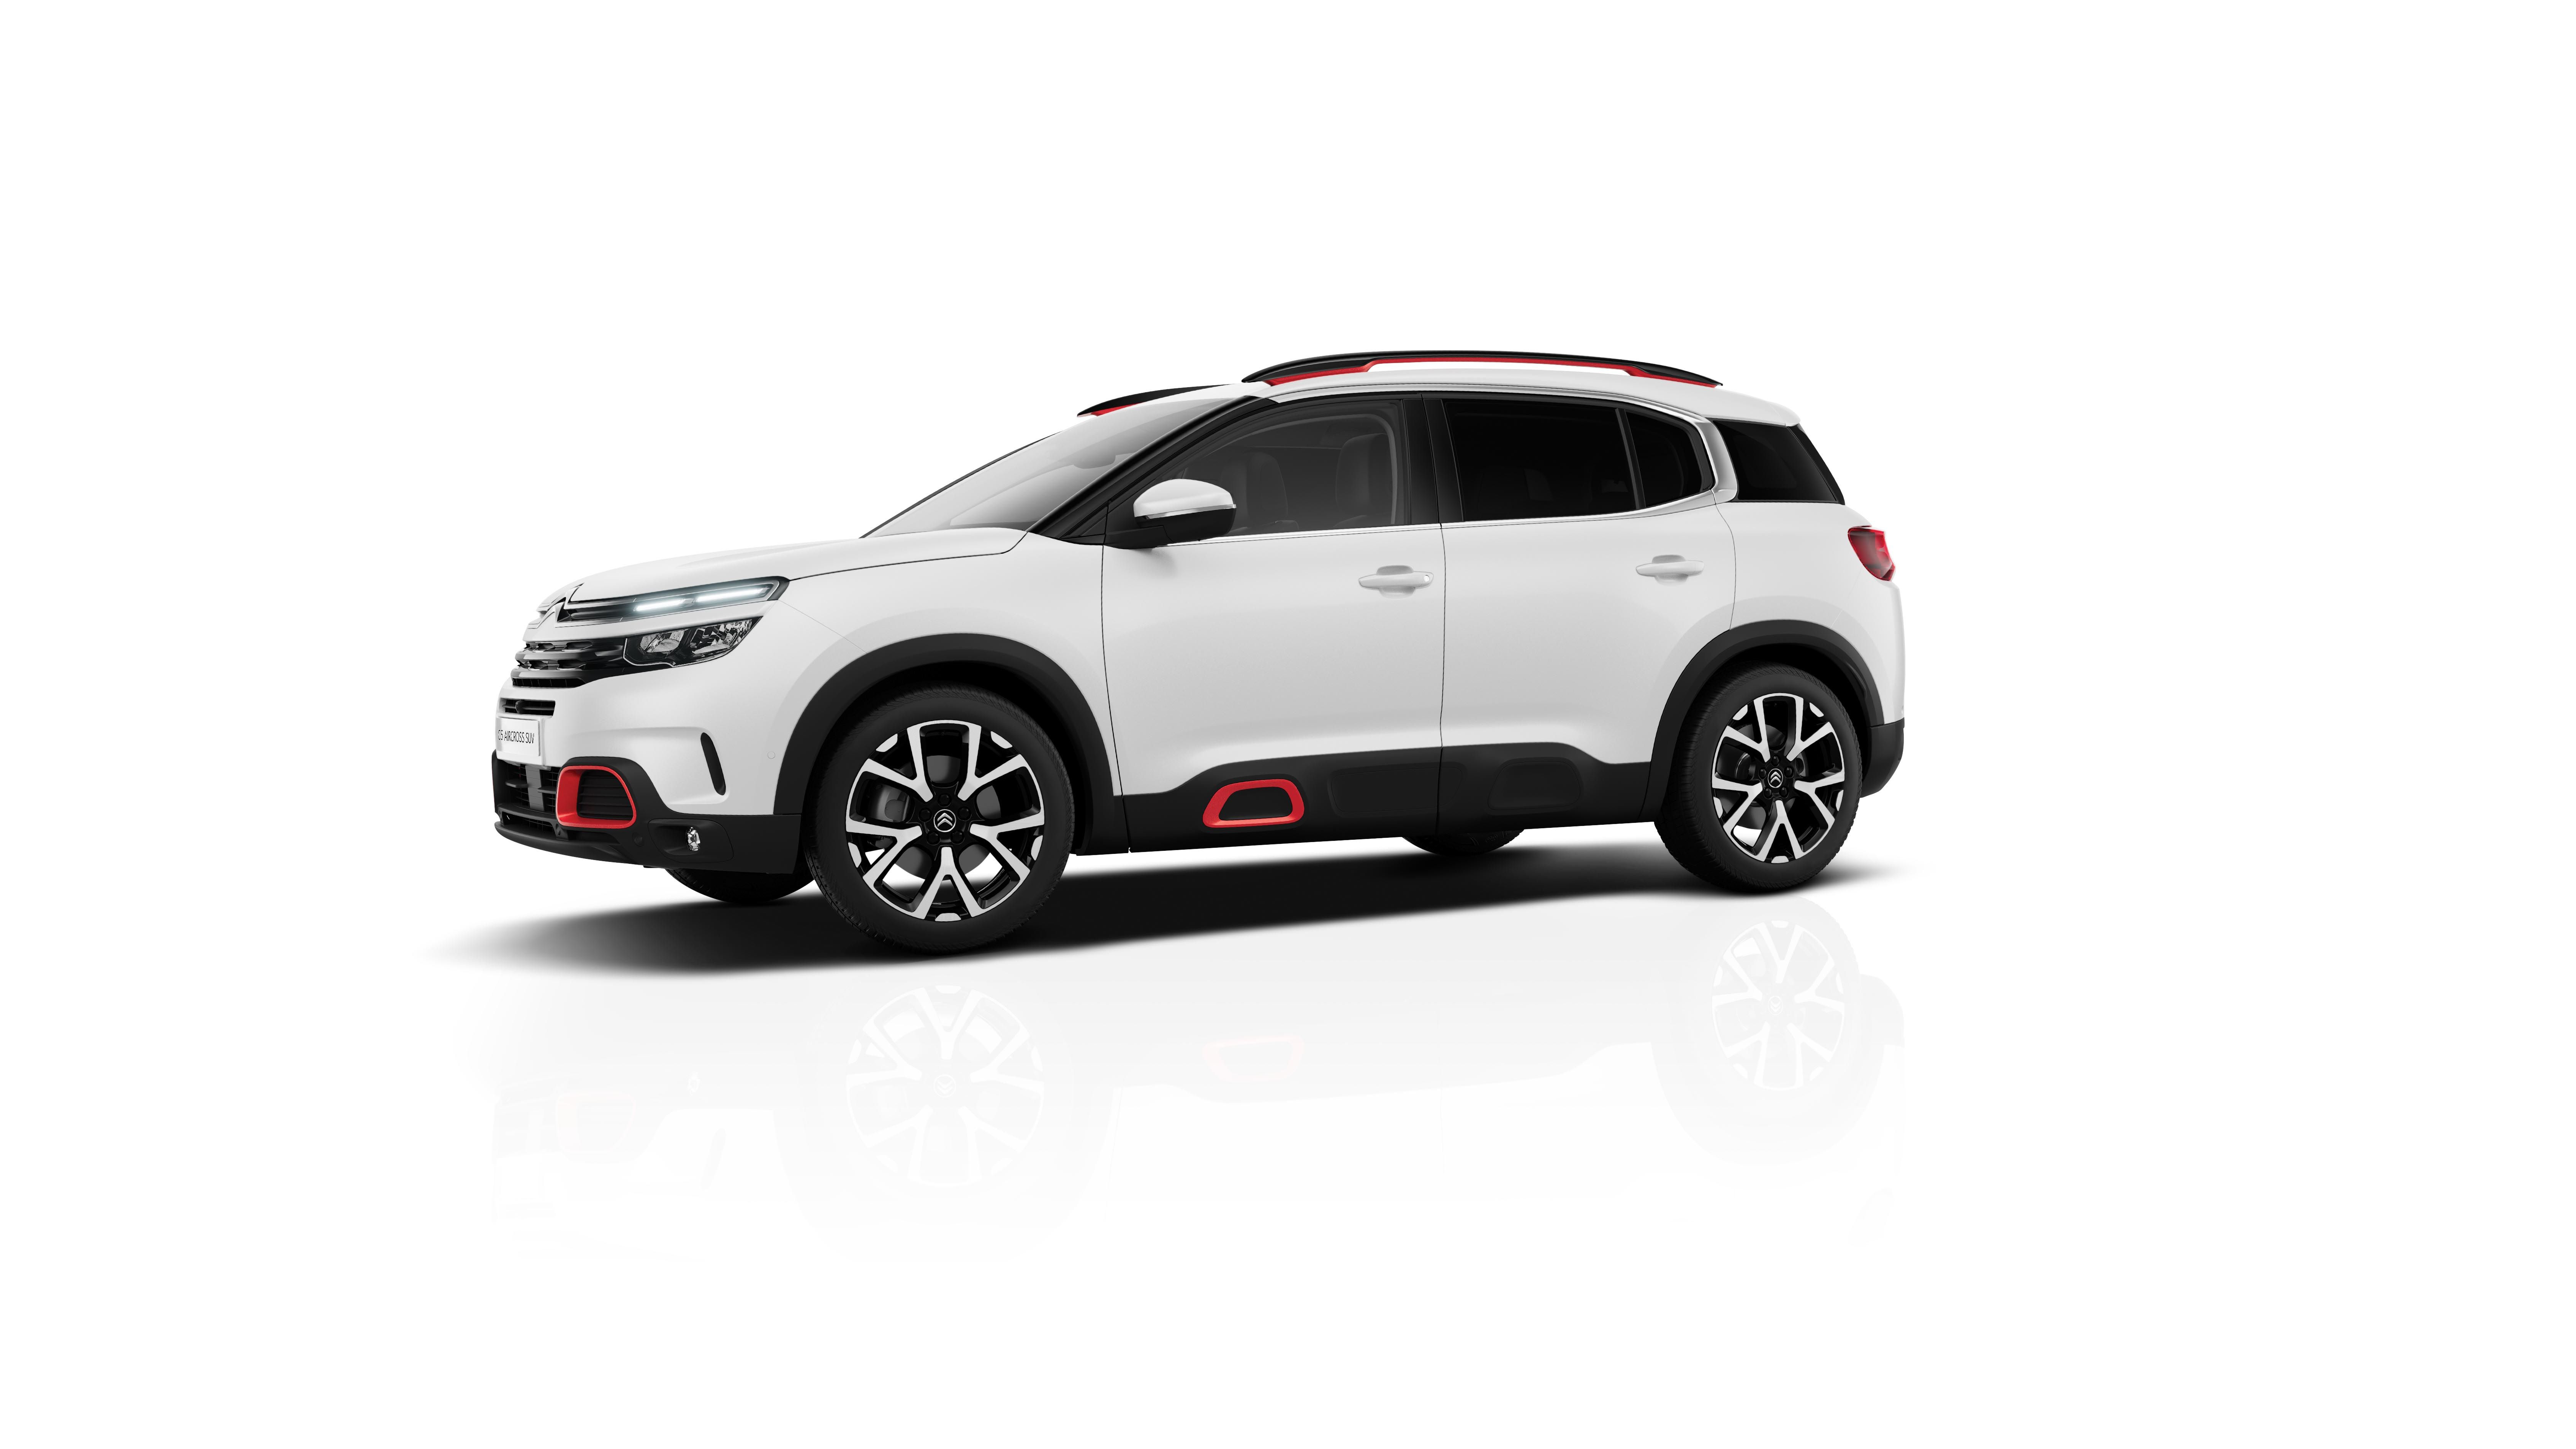 Citroen C5 Aircross has arrived!